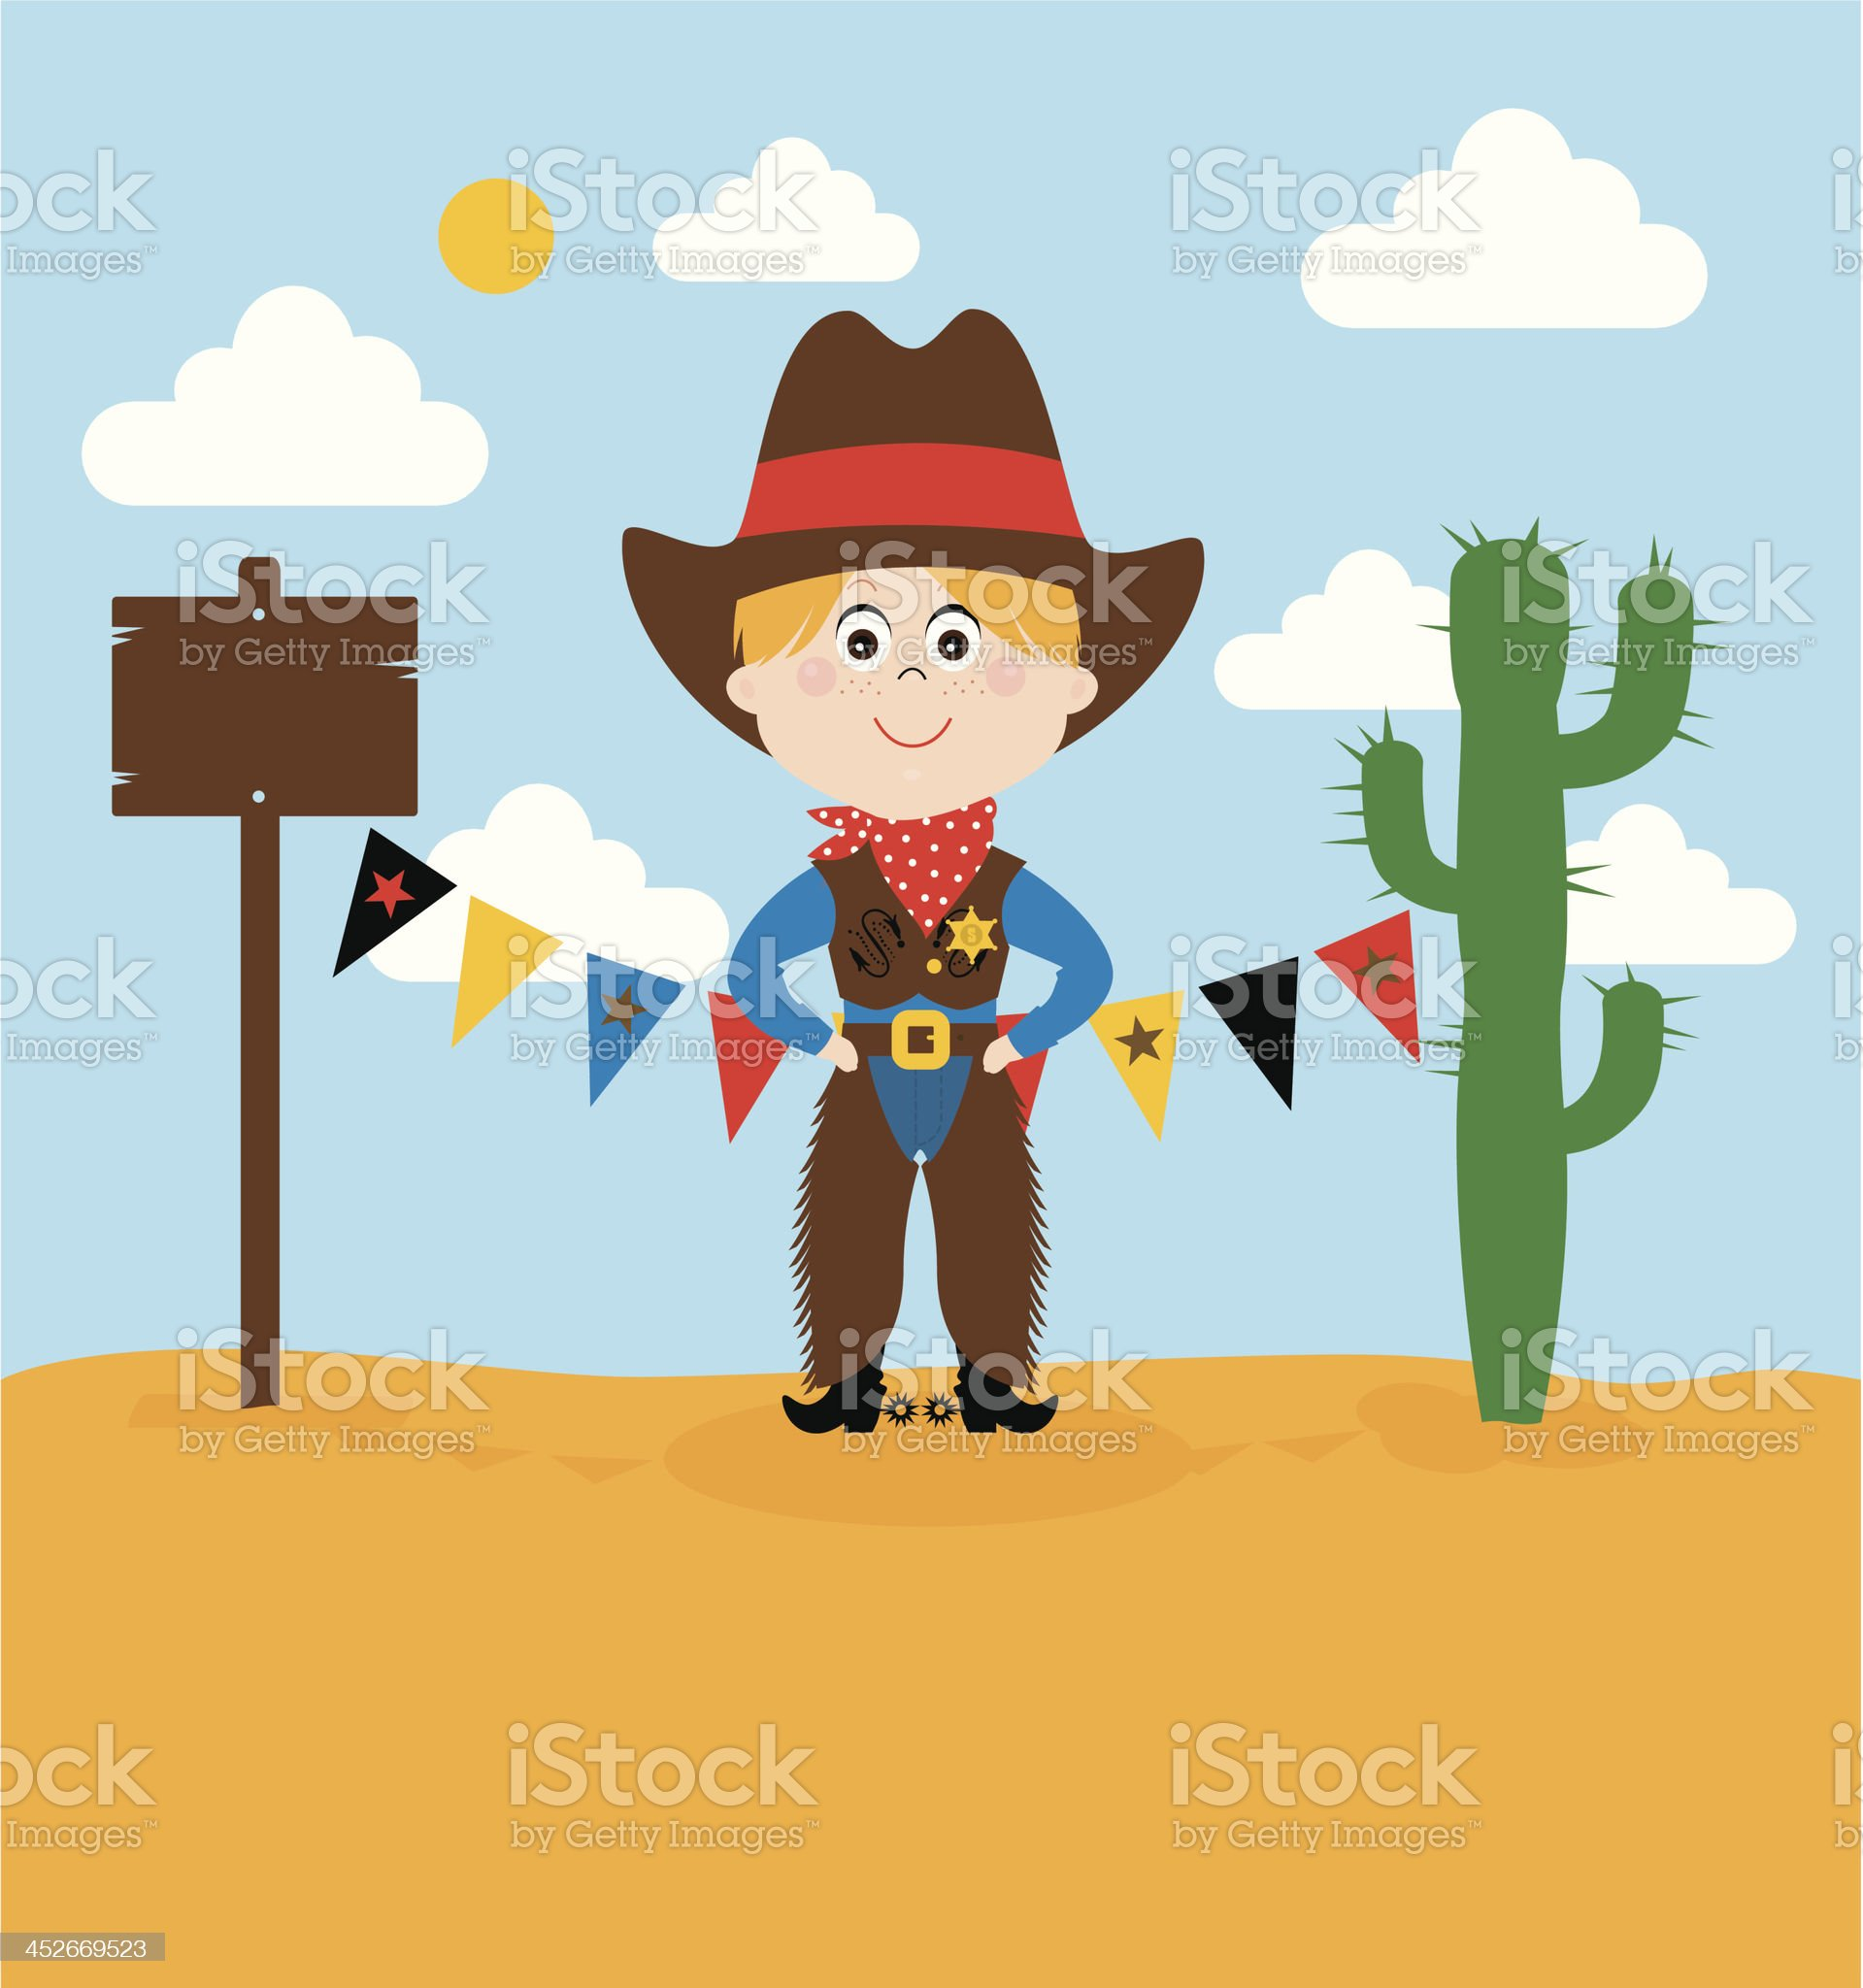 Cute Cowboy royalty-free stock vector art